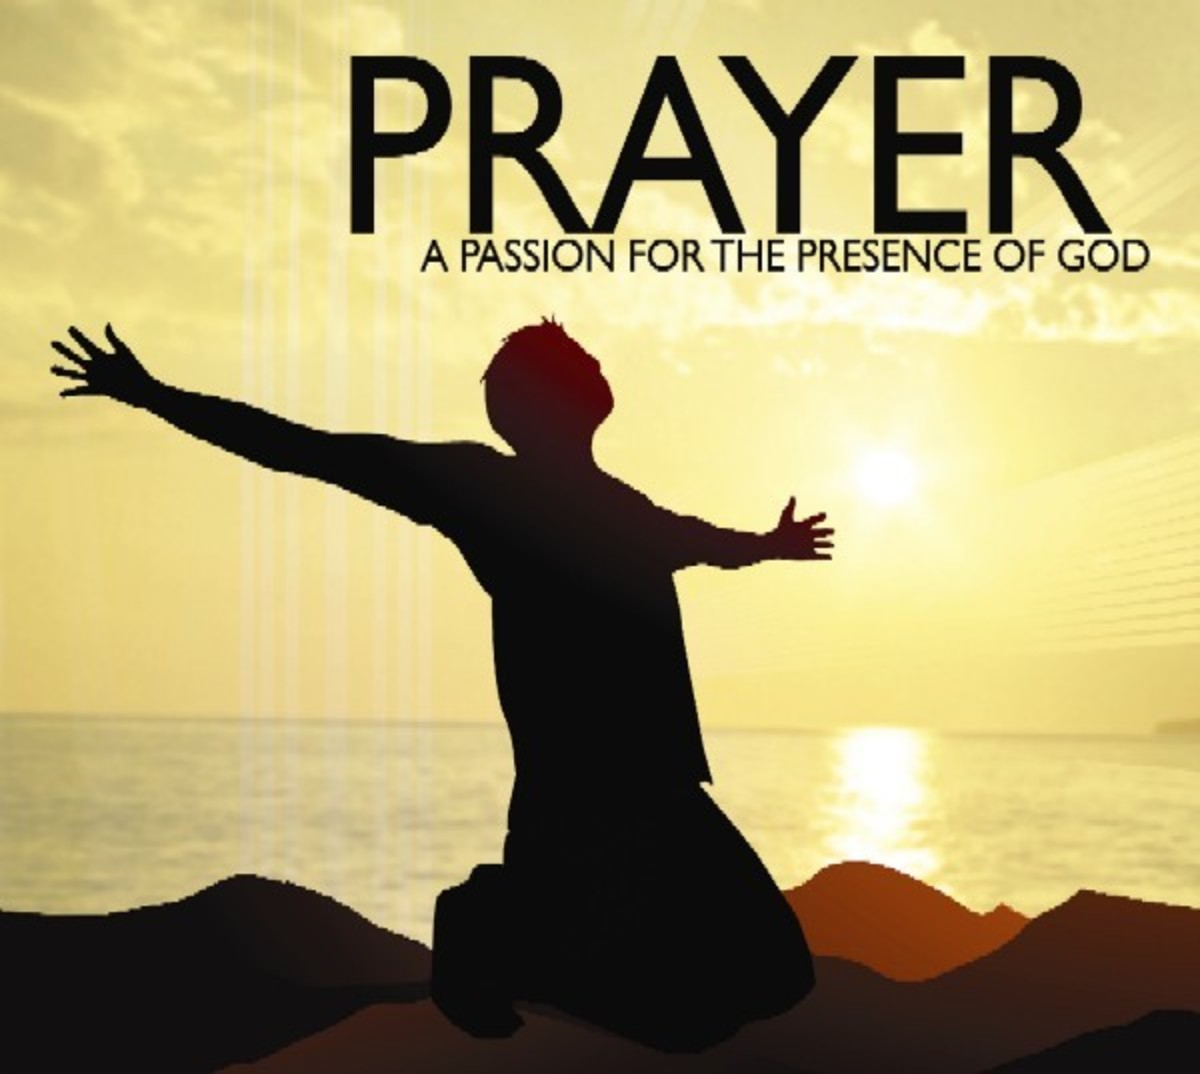 We pray God when we need some help or do something very difficult, like writing these religious articles, therefore we pray God for help and guidance to achieve our aims.